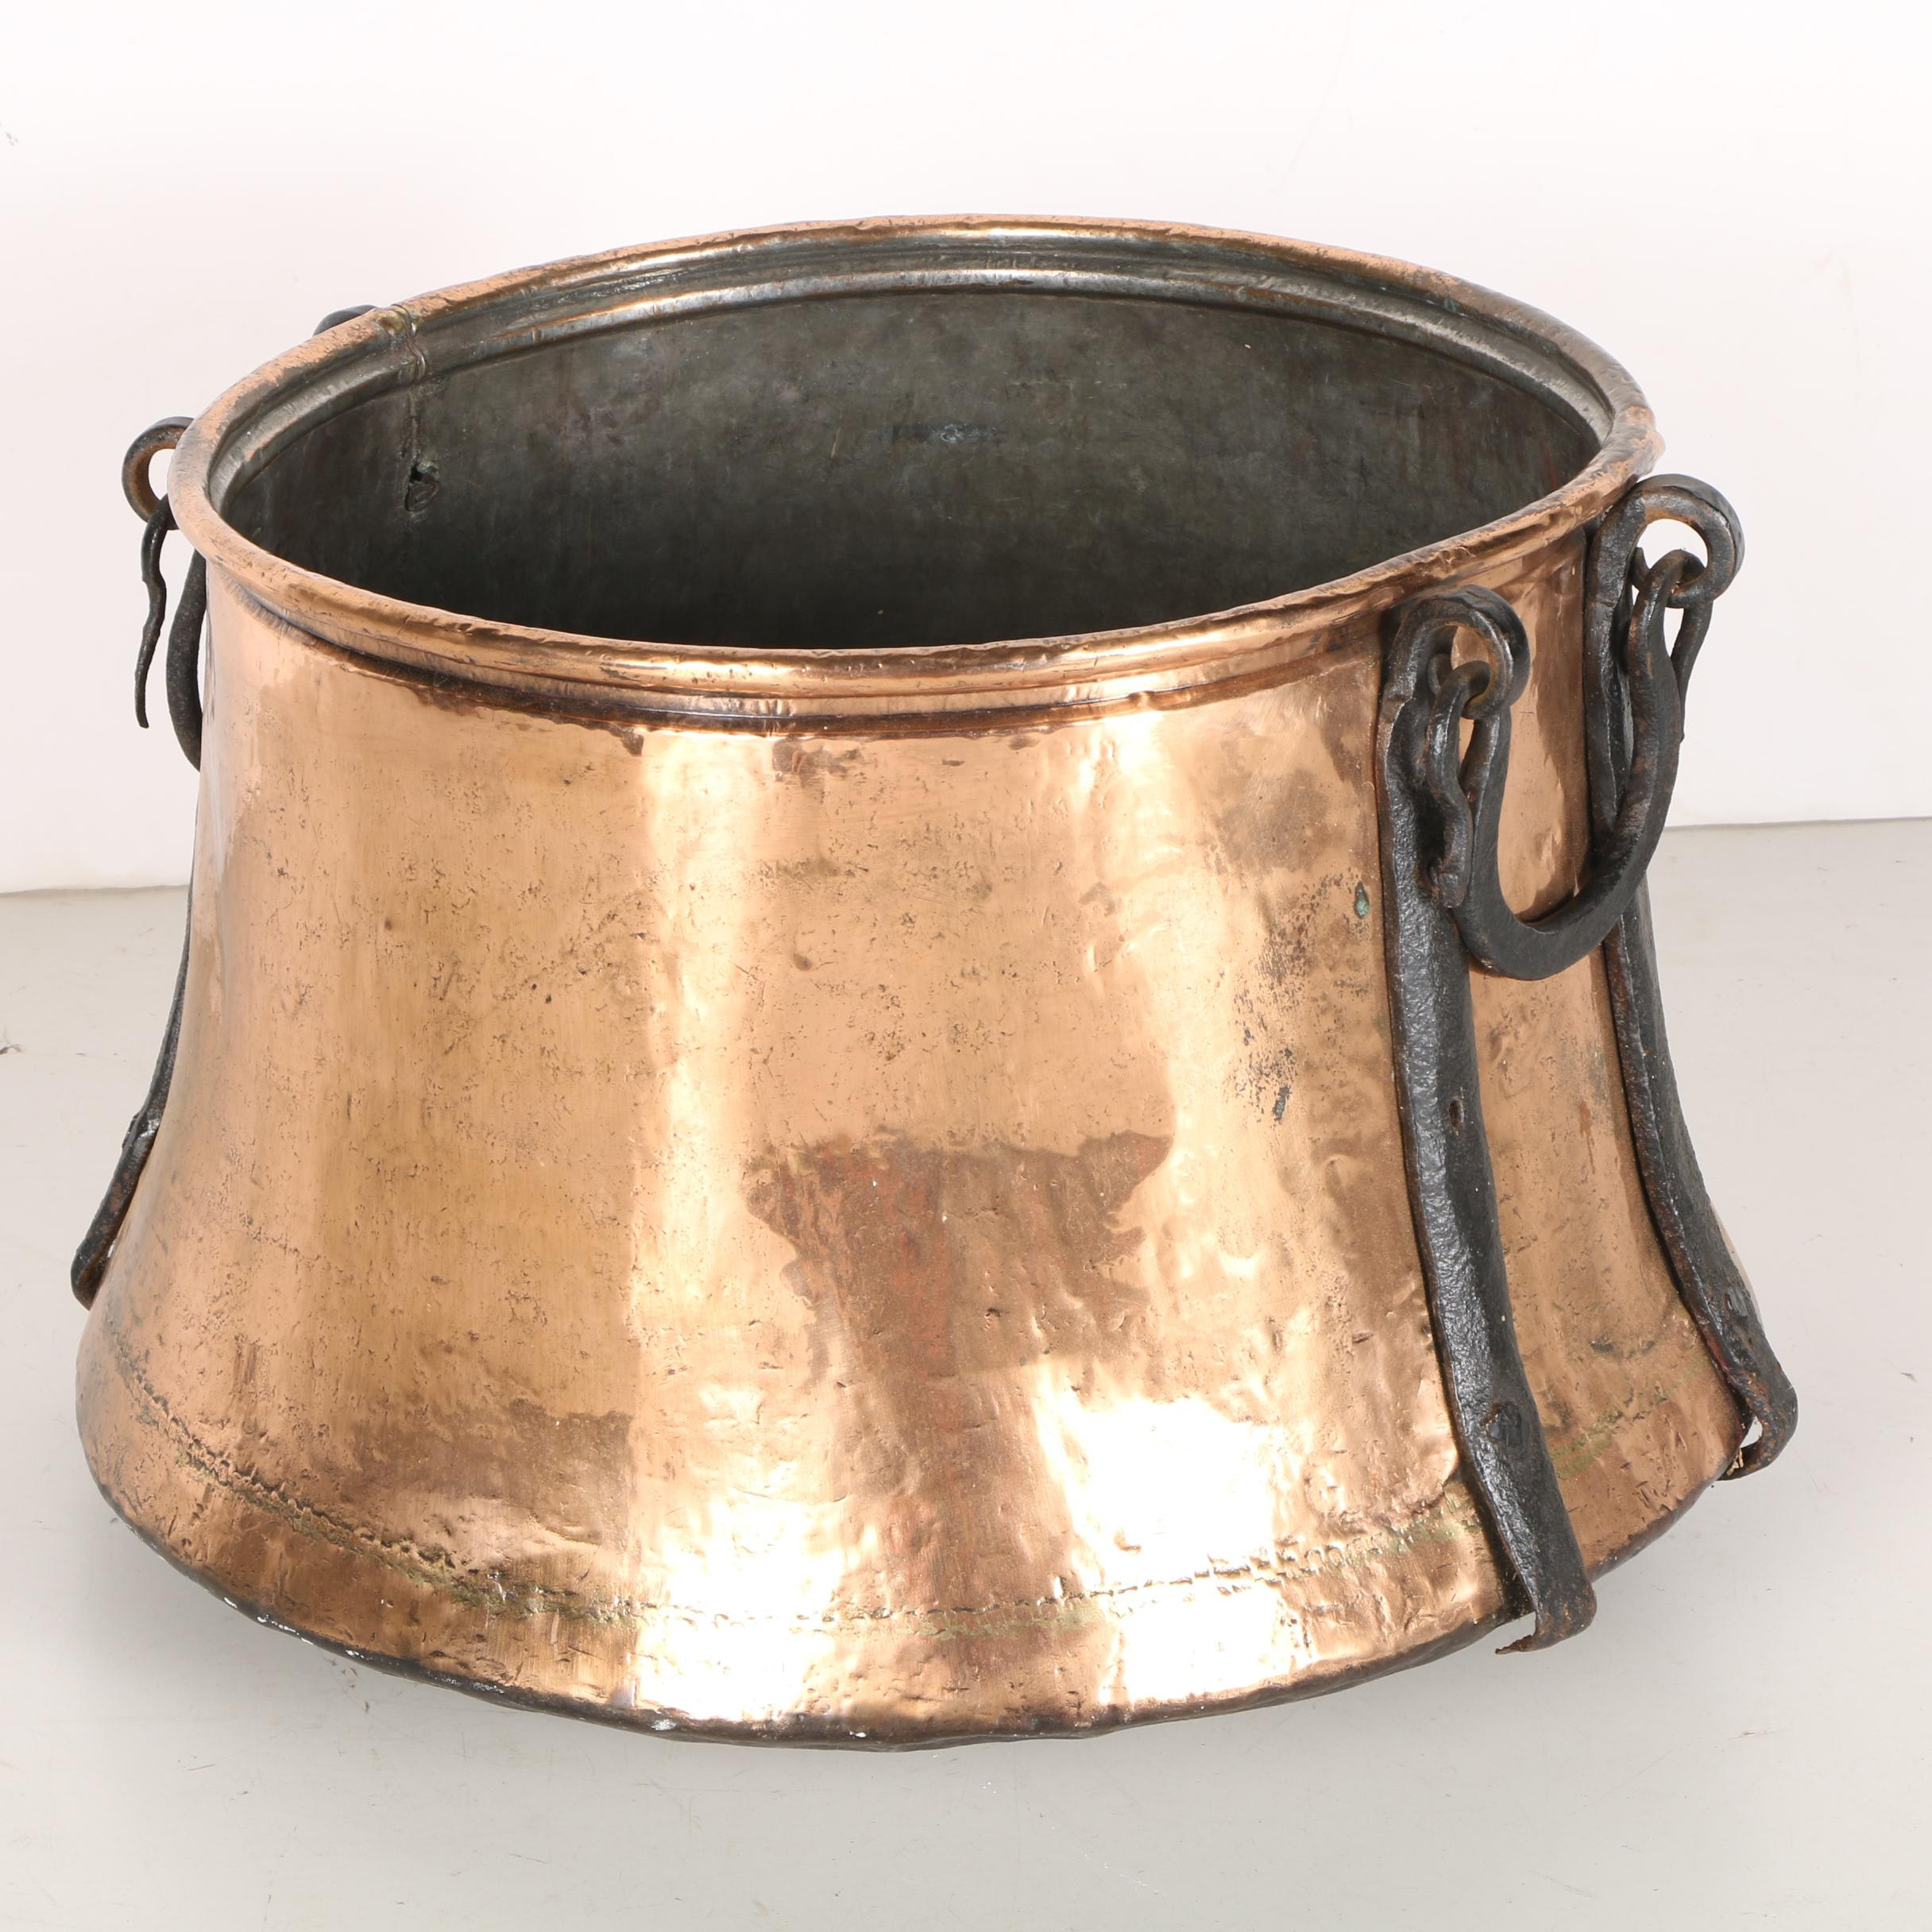 Copper Pot With Iron Handles